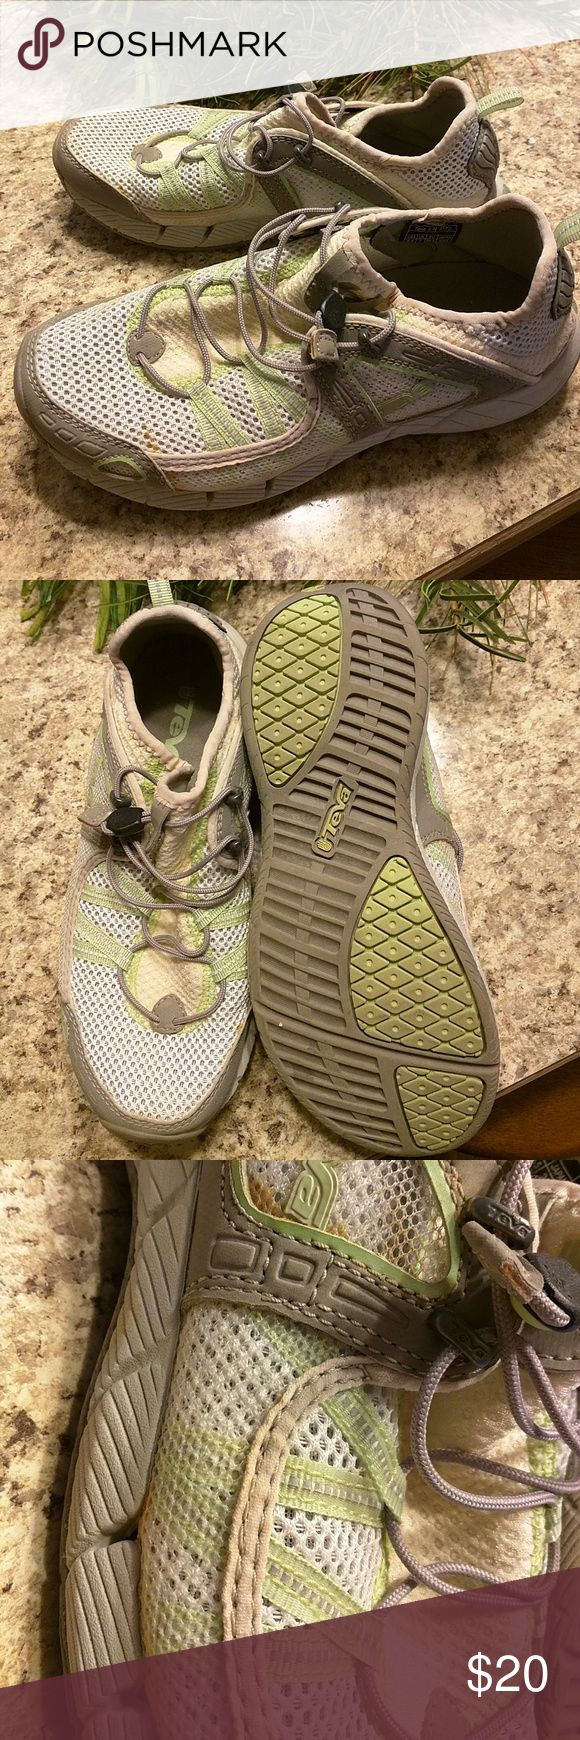 Water shoes Only worn a few times in swimming pool aqua Zumba, some discoloration.  Very comfortable. Teva Shoes Athletic Shoes